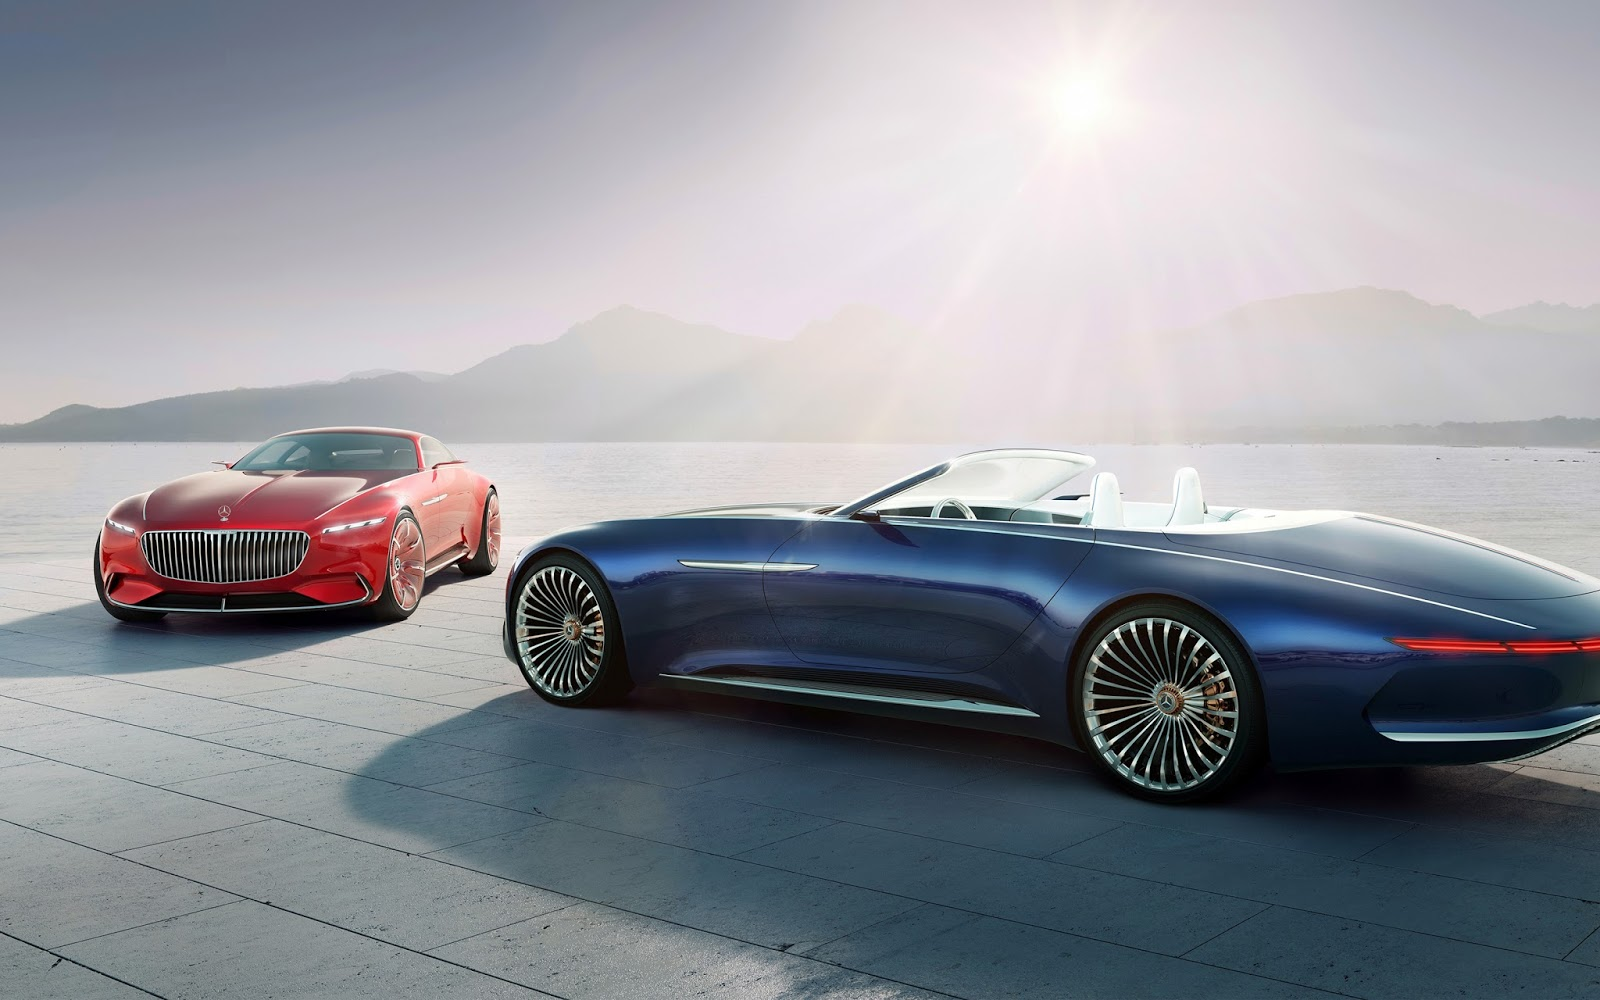 Lifestyle and luxury mercedes maybach 6 cabriolet maybachs land mercedes maybach 6 coup and mercedes maybach 6 cabriolet courtsey daimler ag buycottarizona